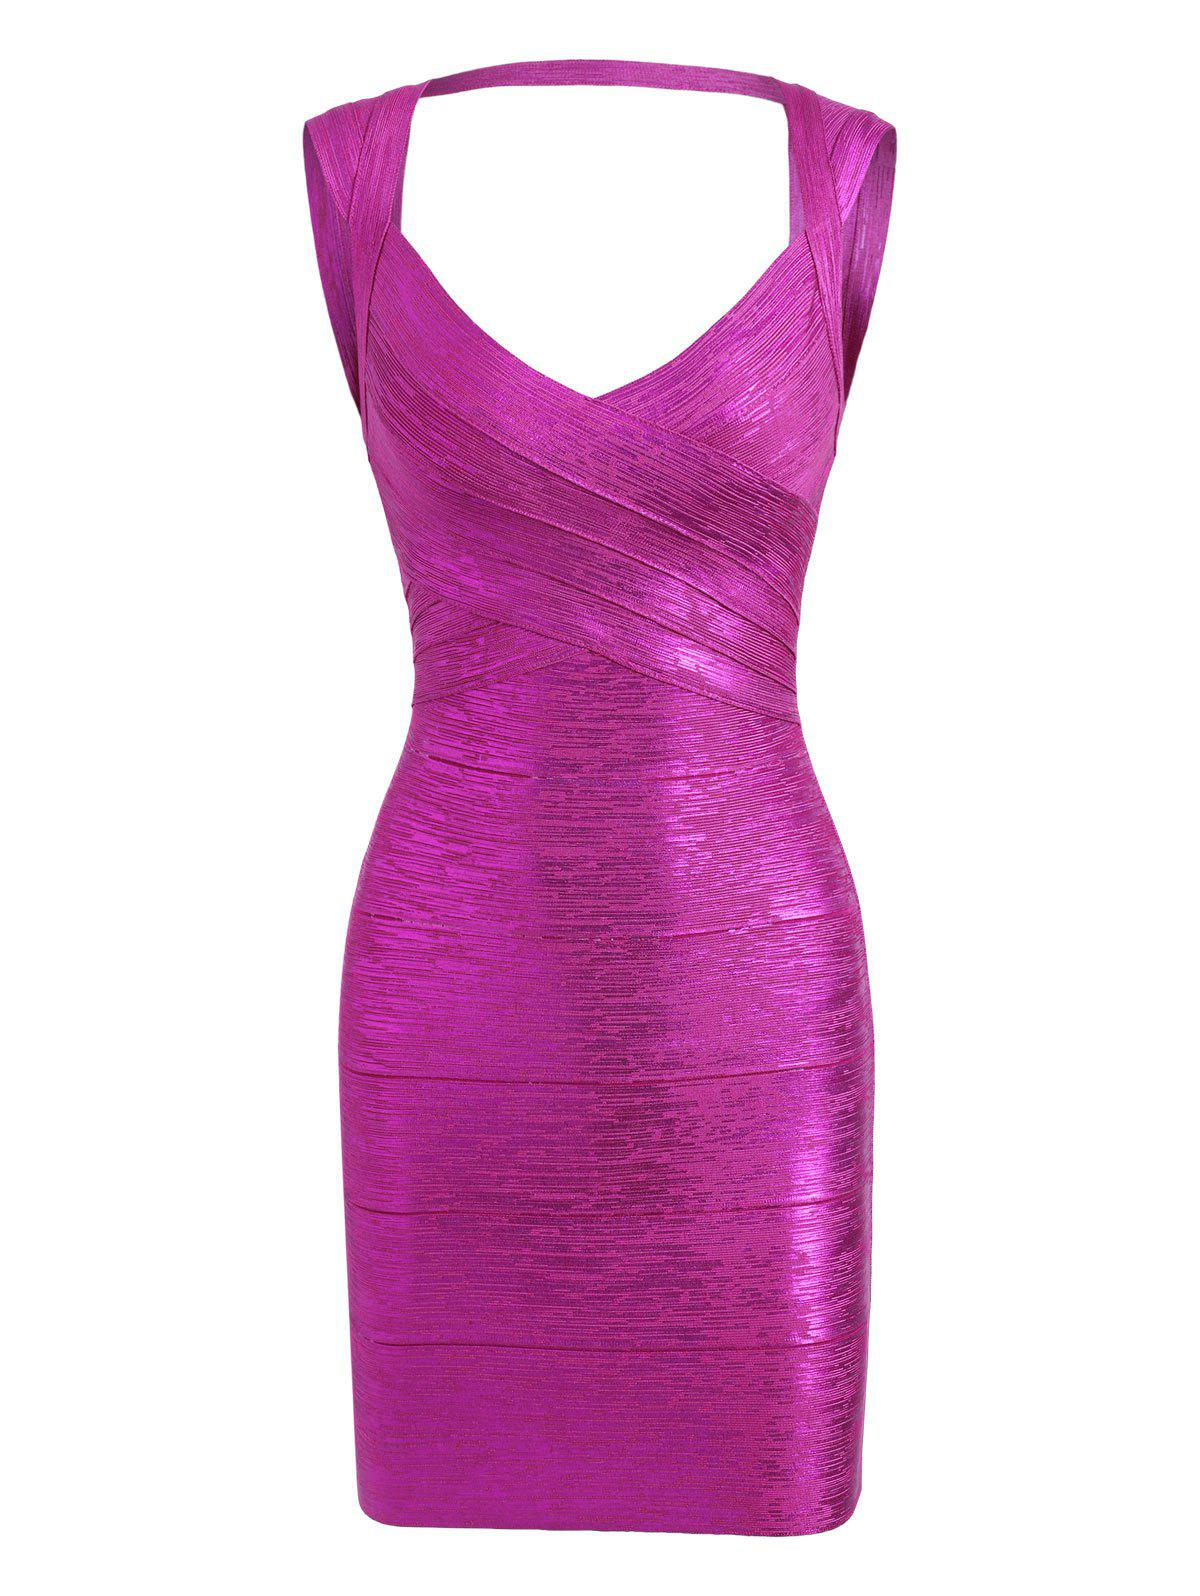 Bronzing Sweetheart Neck Cut Out Bandage Dress - SANGRIA M